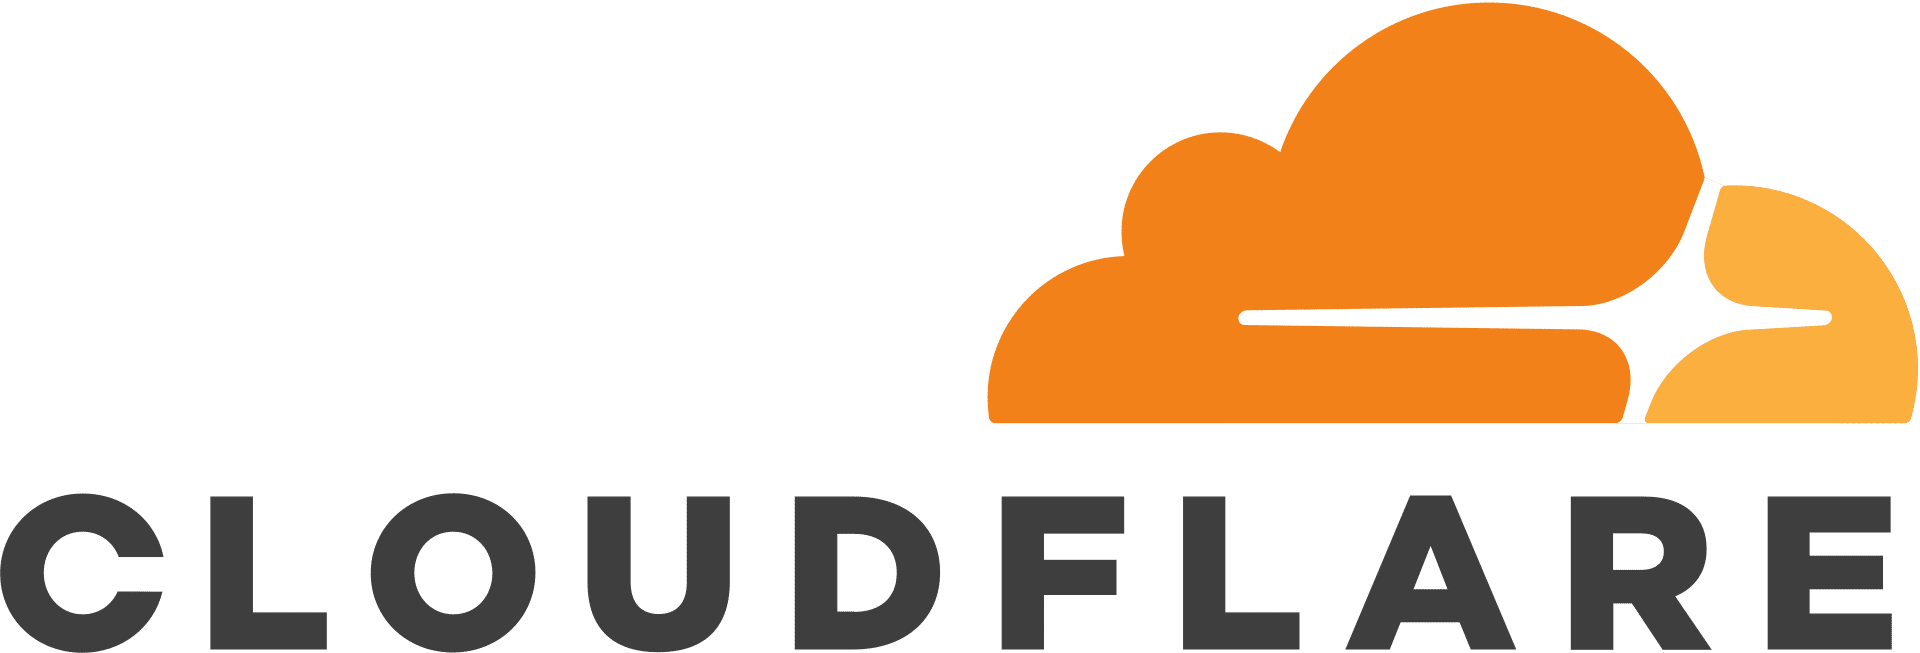 Cloudflare just released the free VPN addon, named Warp, for its 1.1.1.1 DNS resolver mobile app for all users, This was initially announced back in